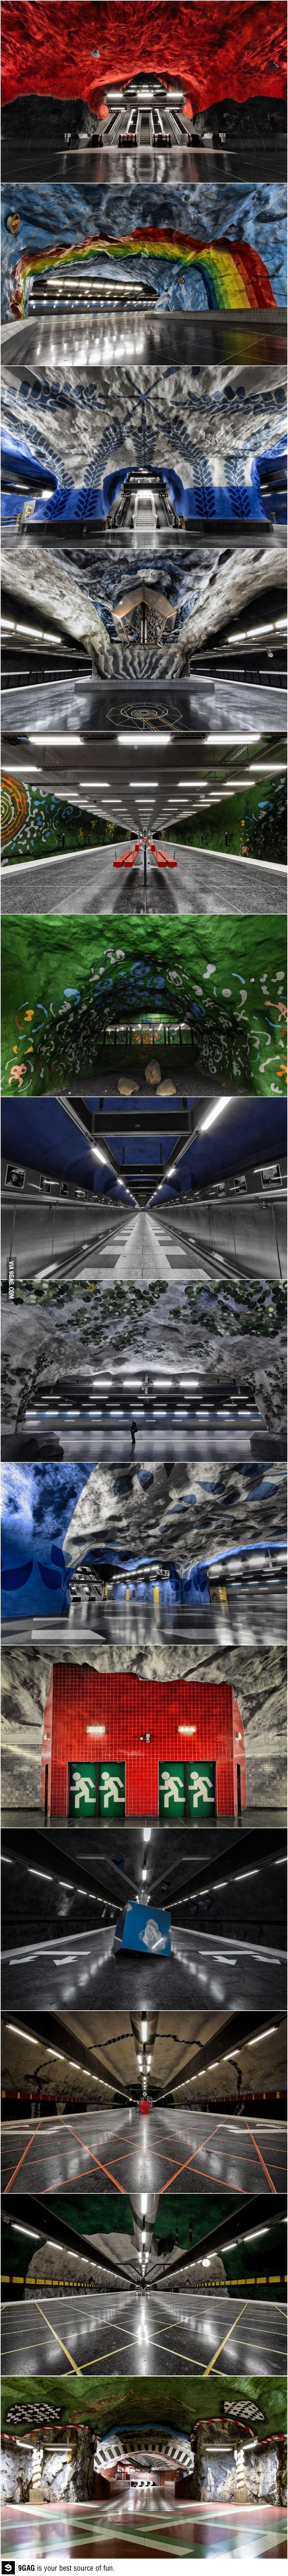 Stunning underground art In Stockholm's metro station | #creativity